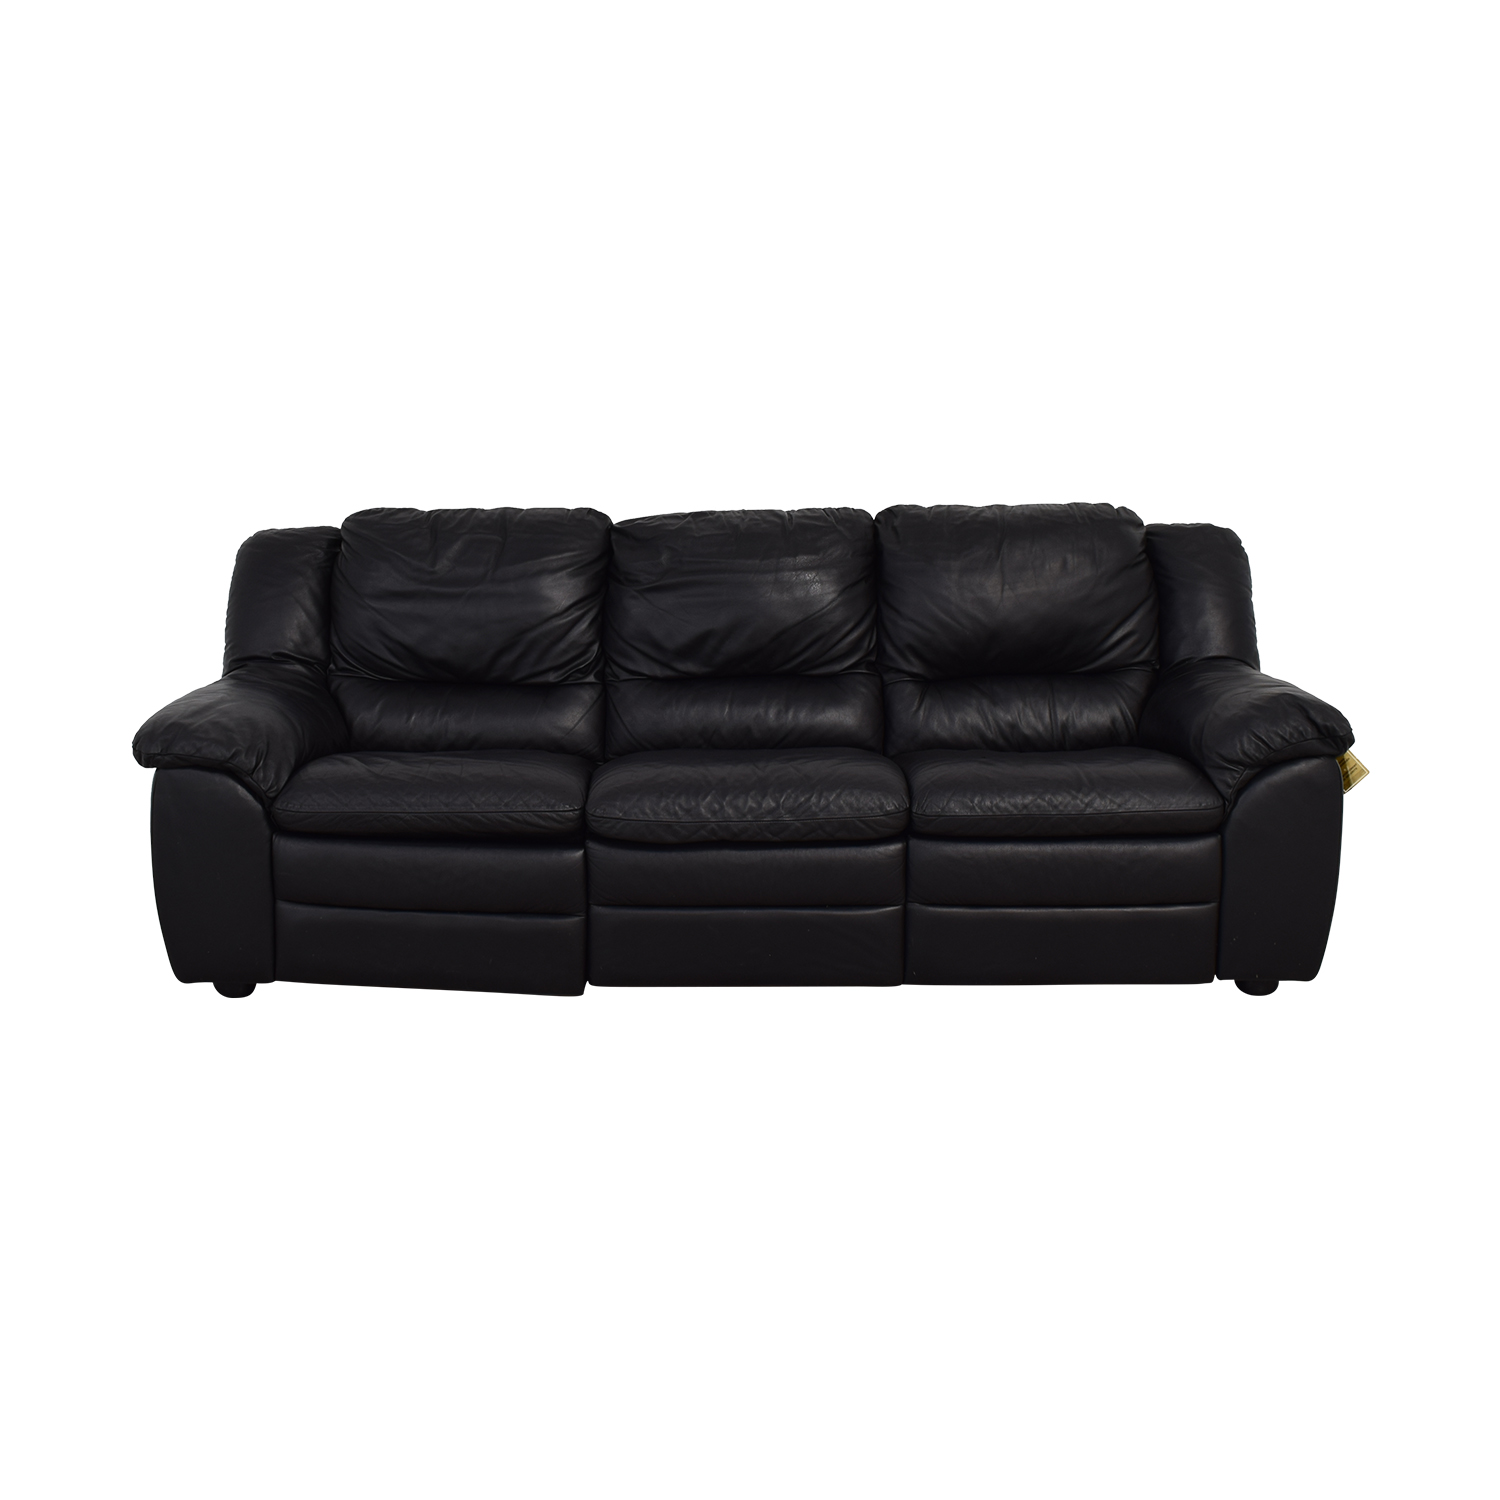 Natuzzi Black Leather Three-Cushion Recliner Sofa Natuzzi